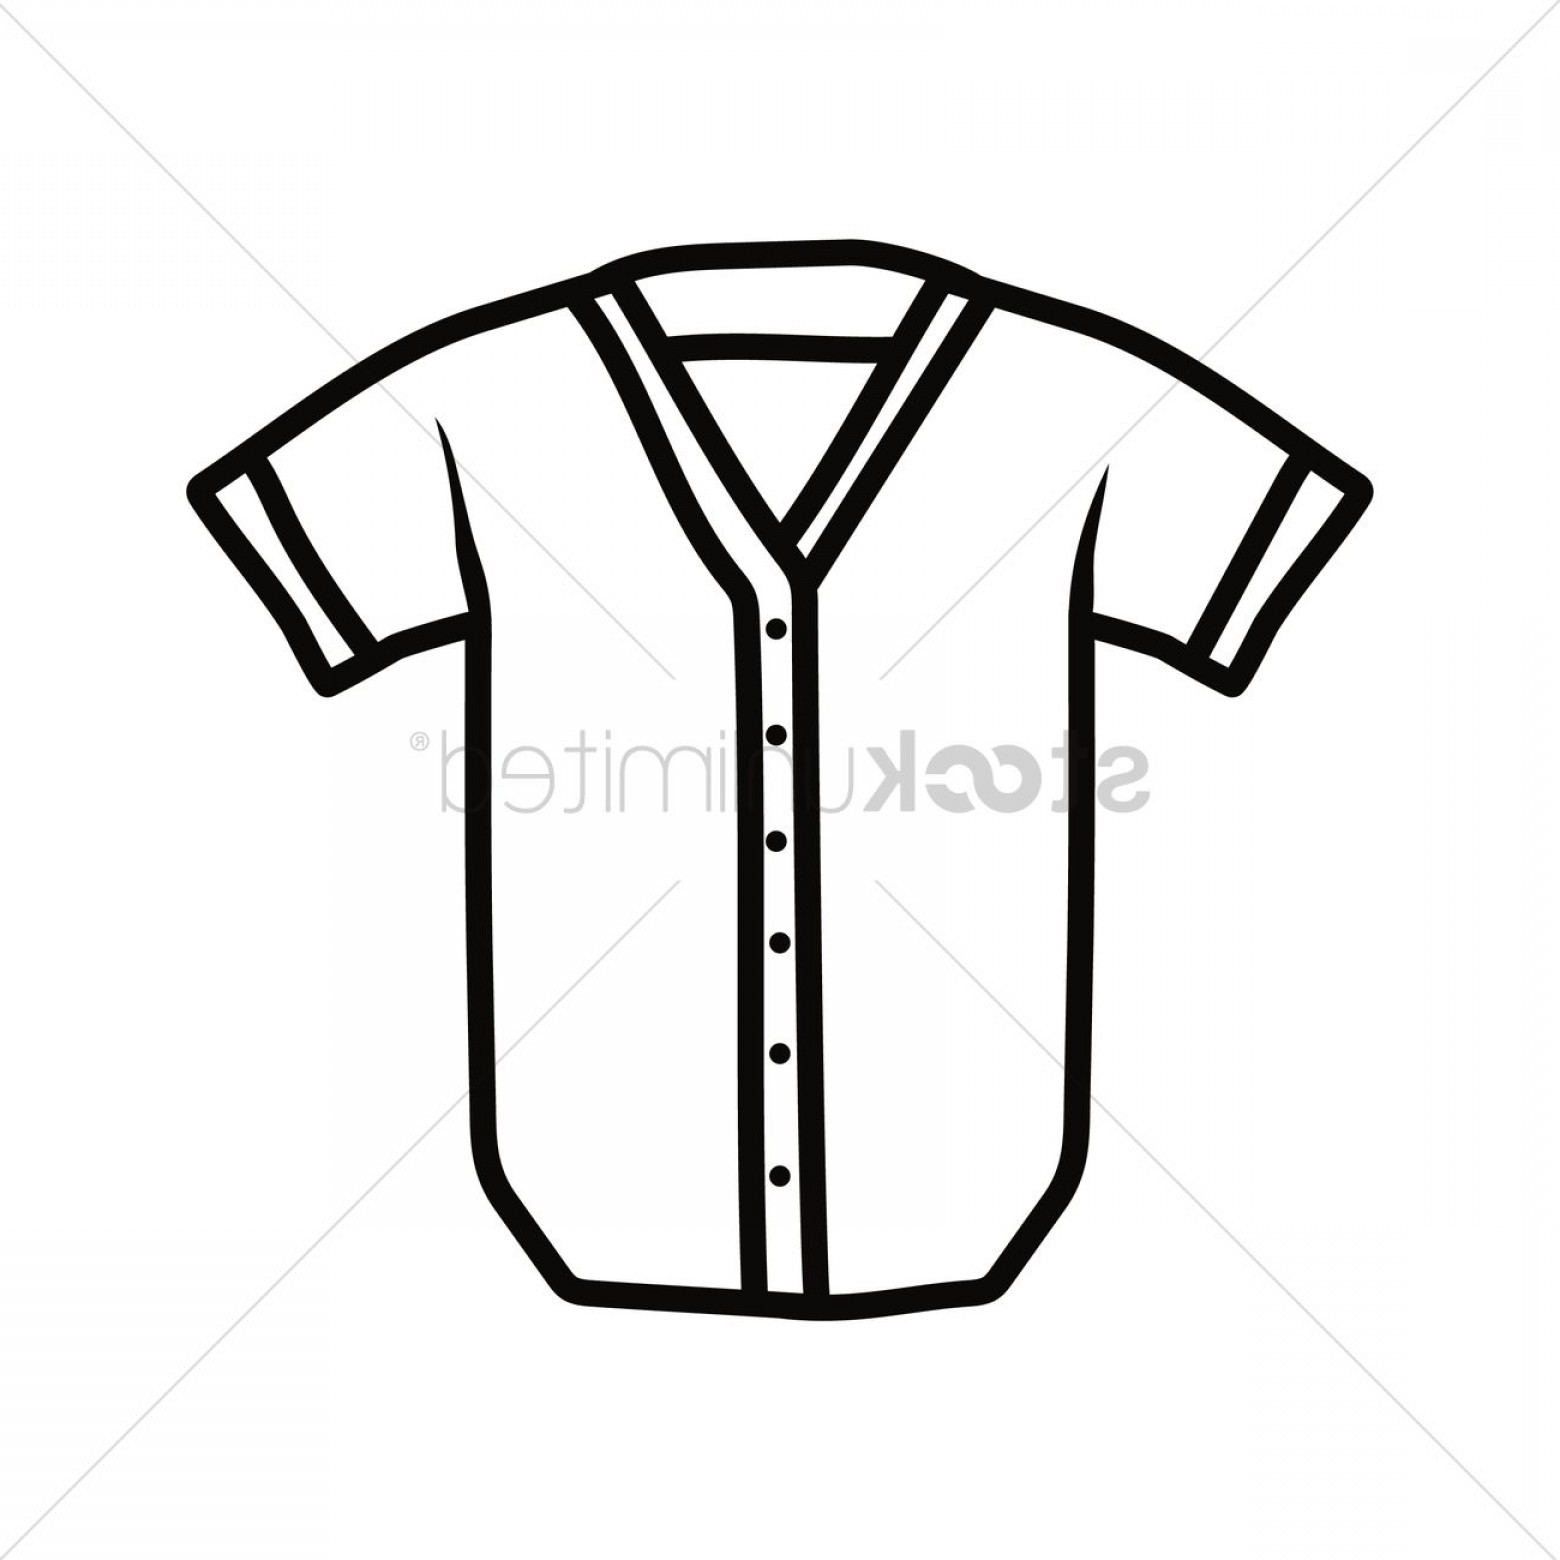 Baseball clipart for t shirts clip art download Rrblv Baseball Clipart For T Shirts | HandandBeak clip art download